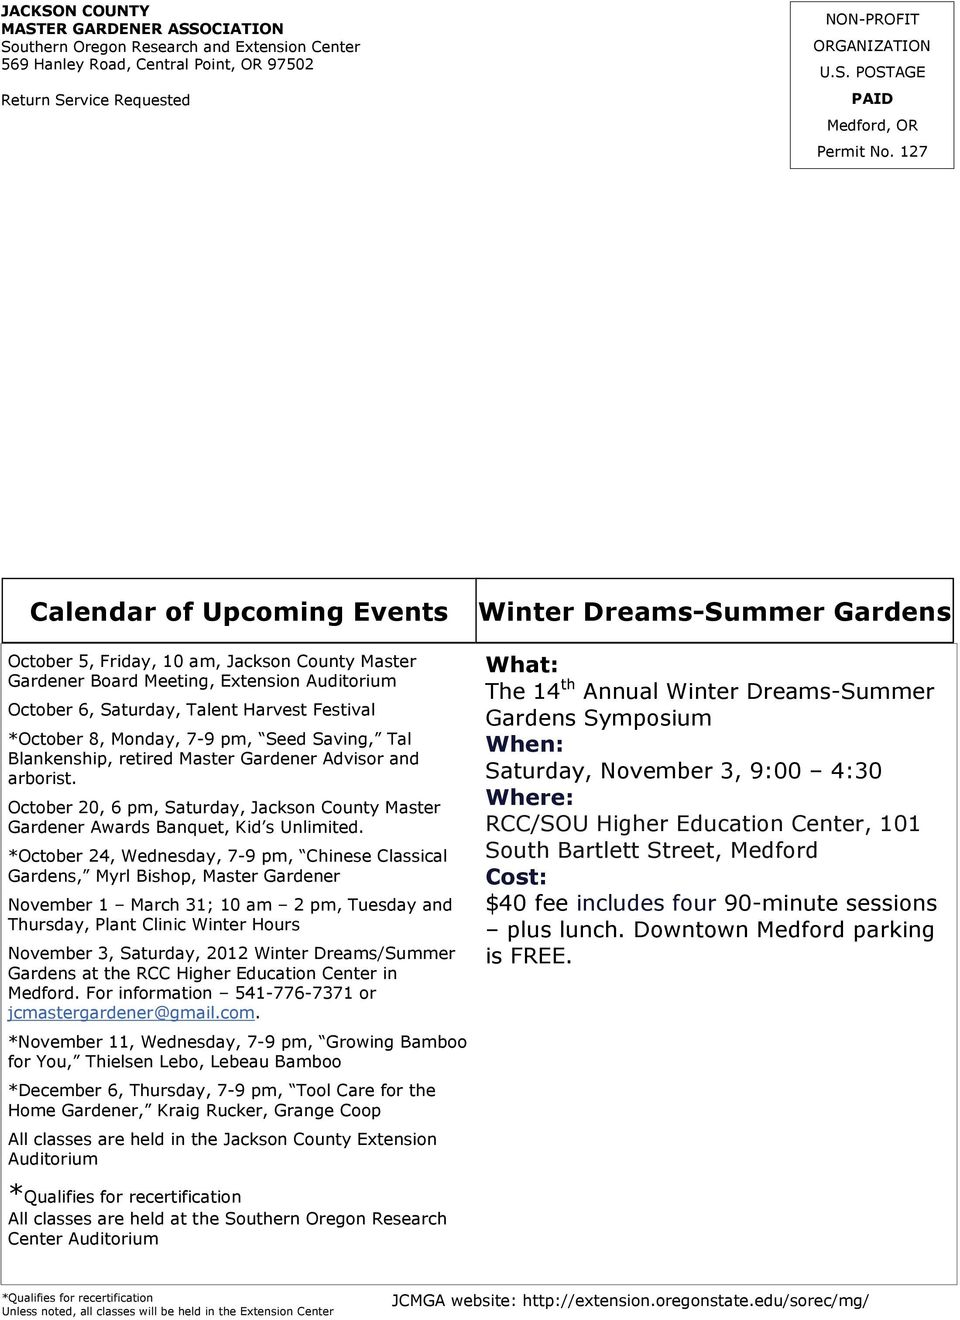 Calendar of Upcoming Events *October 8, Monday, 7-9 pm, Seed Saving, Tal Blankenship, January 6, 2012, retired Friday, Master 10 Gardener am noon, Advisor JCMGA and Board arborist.